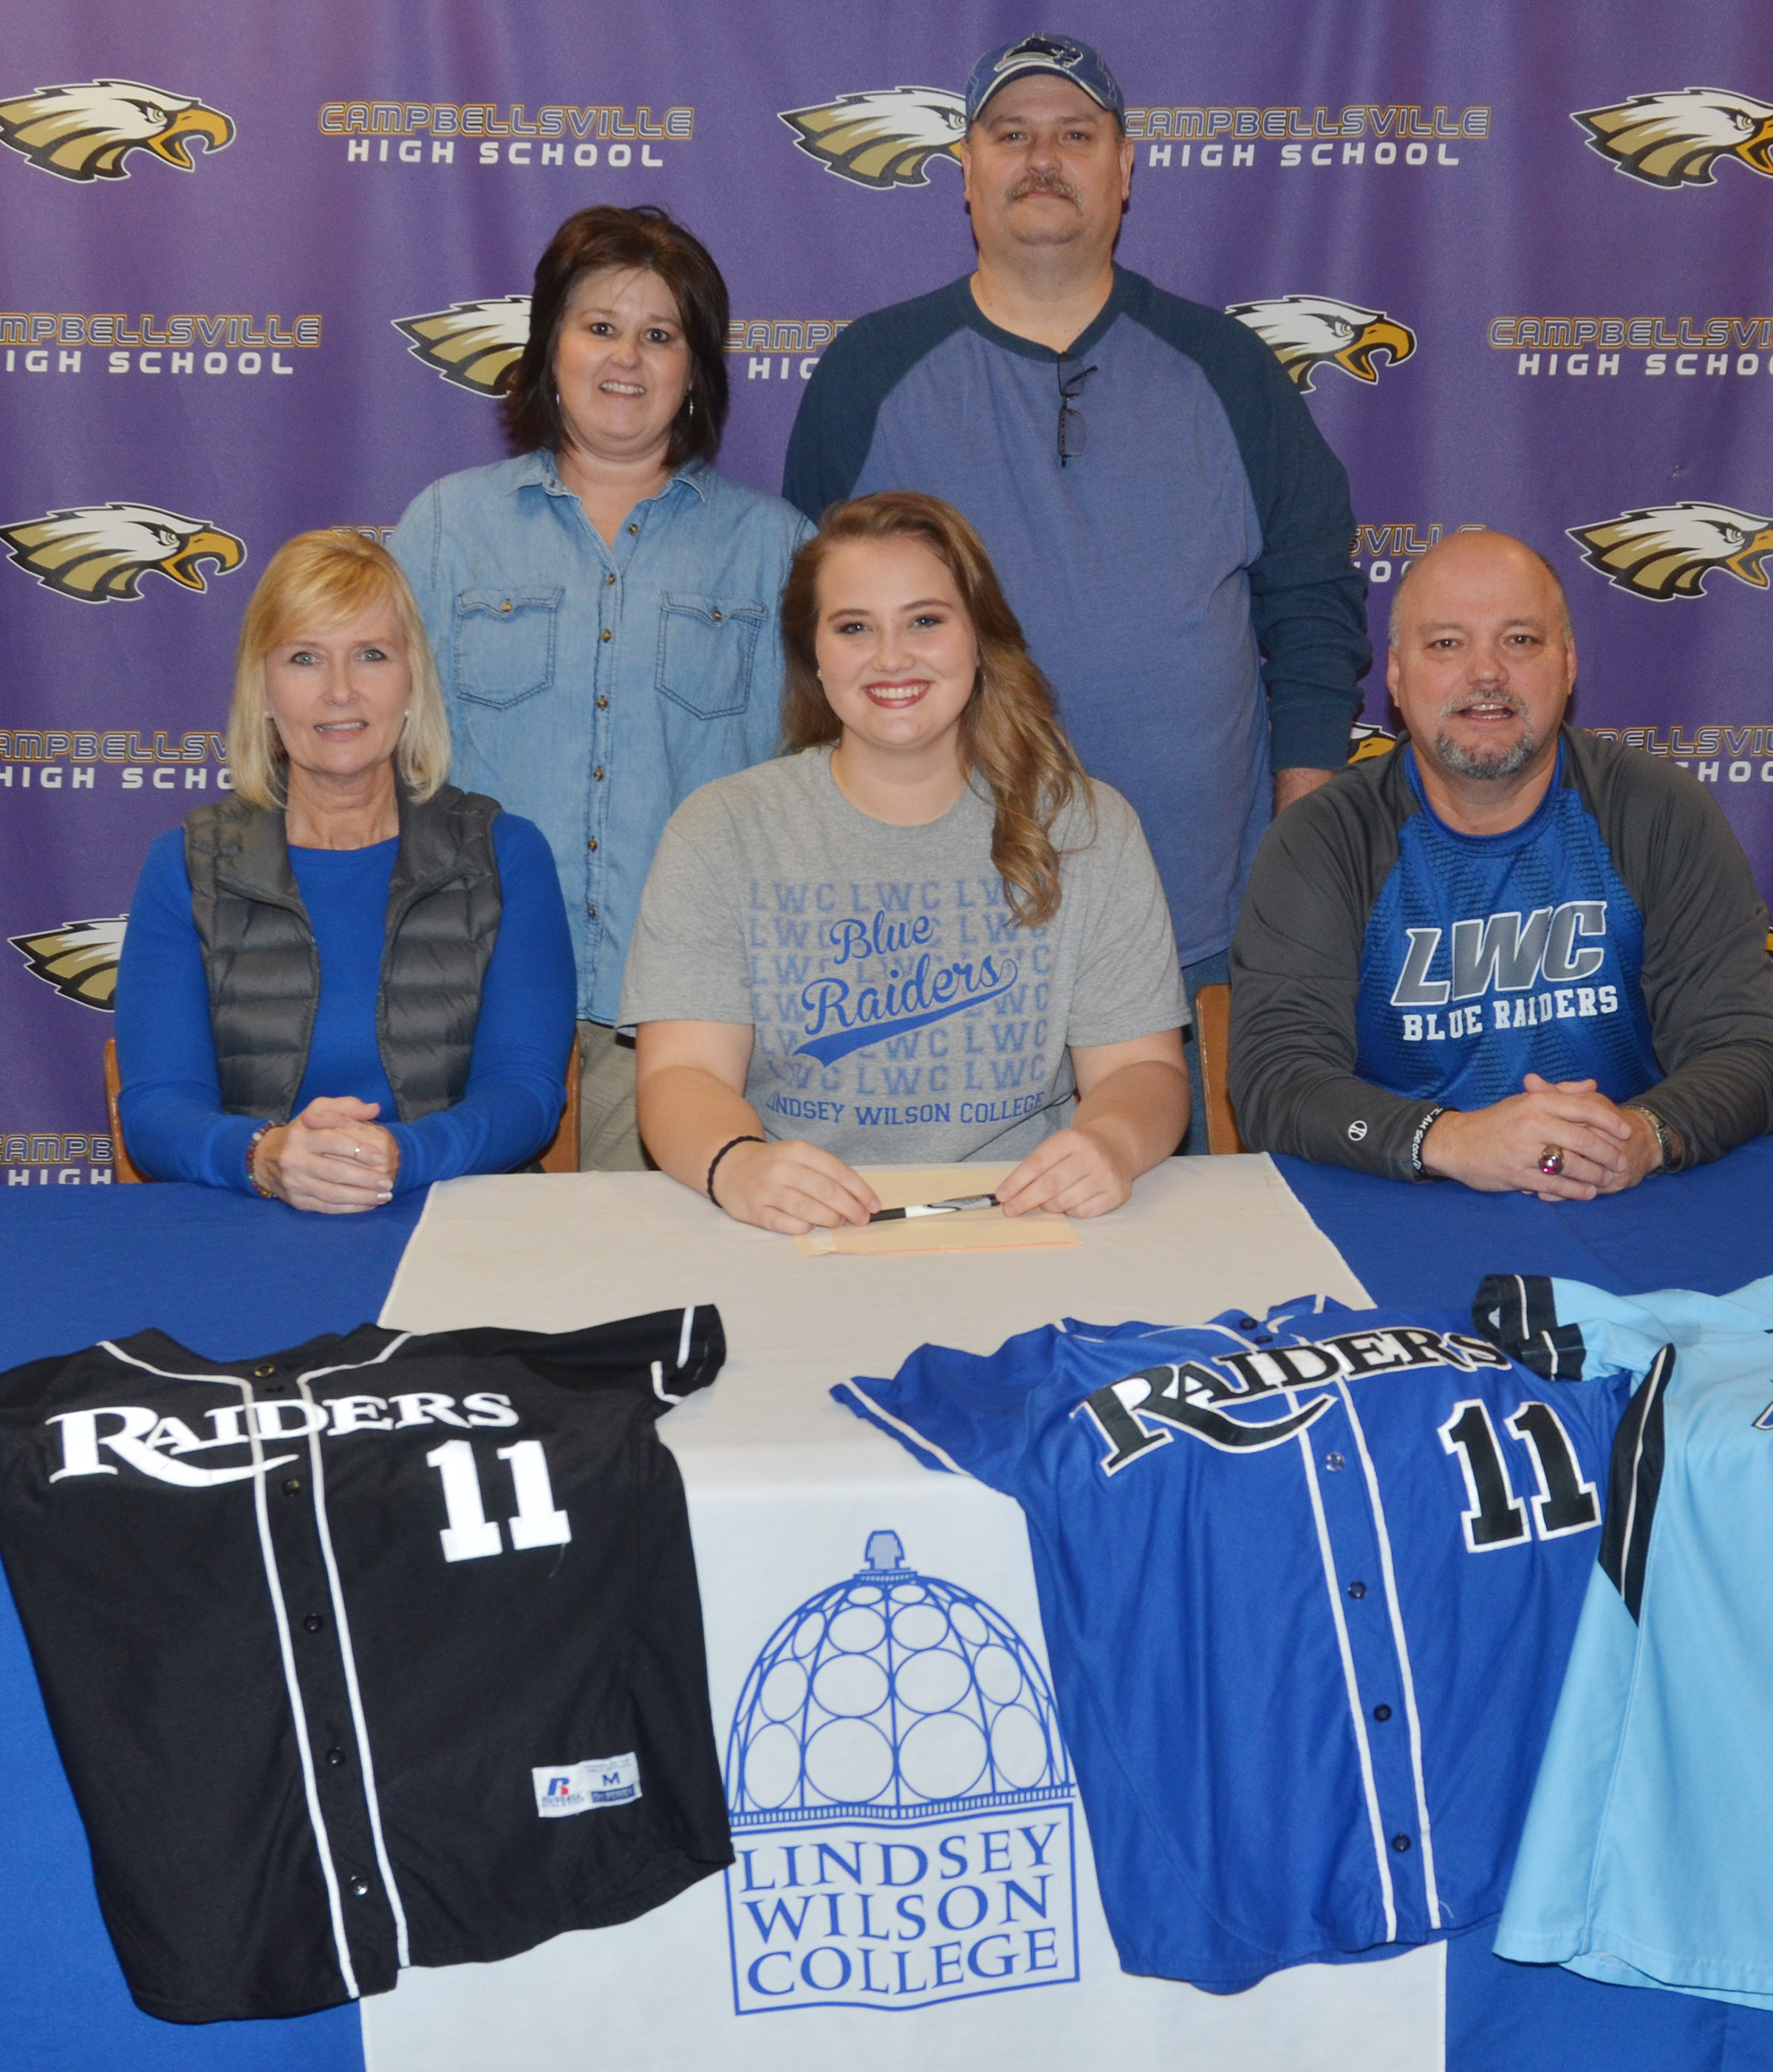 CHS senior Brenna Wethington has signed to continue her softball career at Lindsey Wilson College. She is pictured with her parents, Sheila and John Wethington and Campbellsville Board of Education member Suzanne Wilson and her husband, Daren.